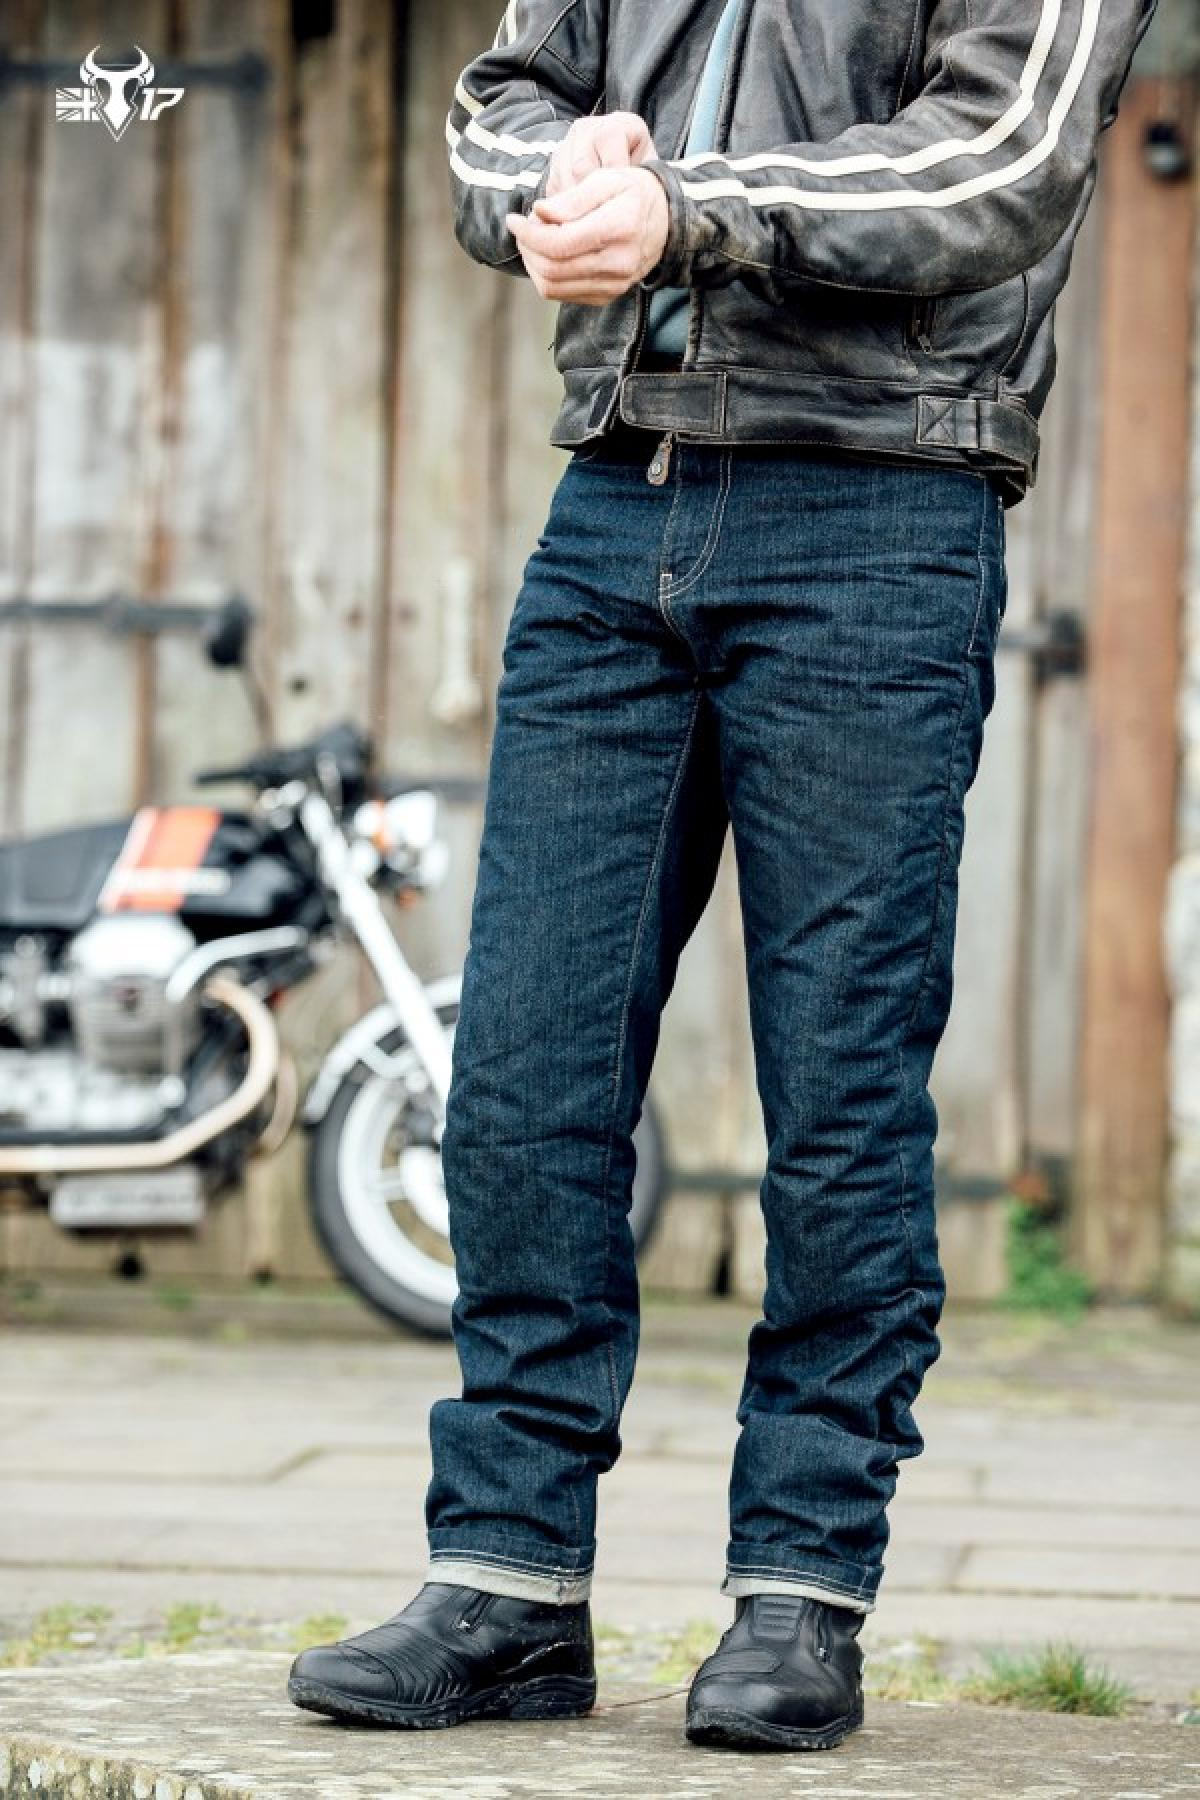 Blue 40 Bull-It SR6 Vintage 17 Straight Covec Motorcycle Jeans Trousers Short